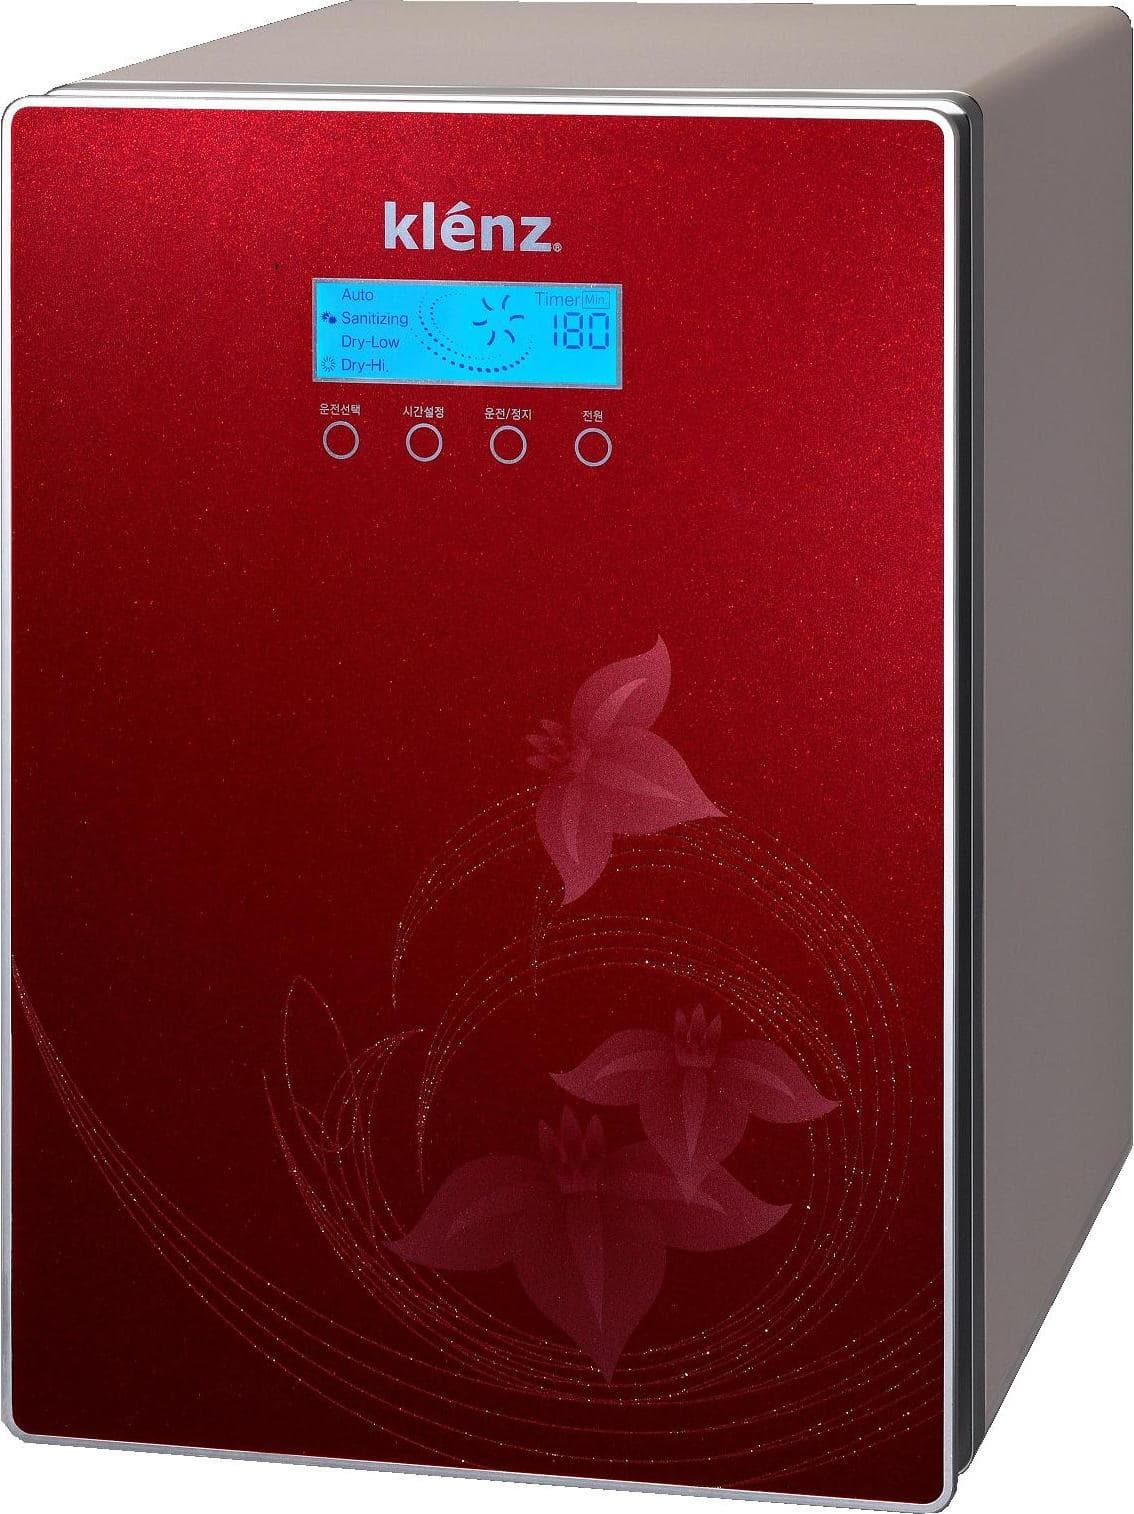 KLENZ SHOES SANITIZER